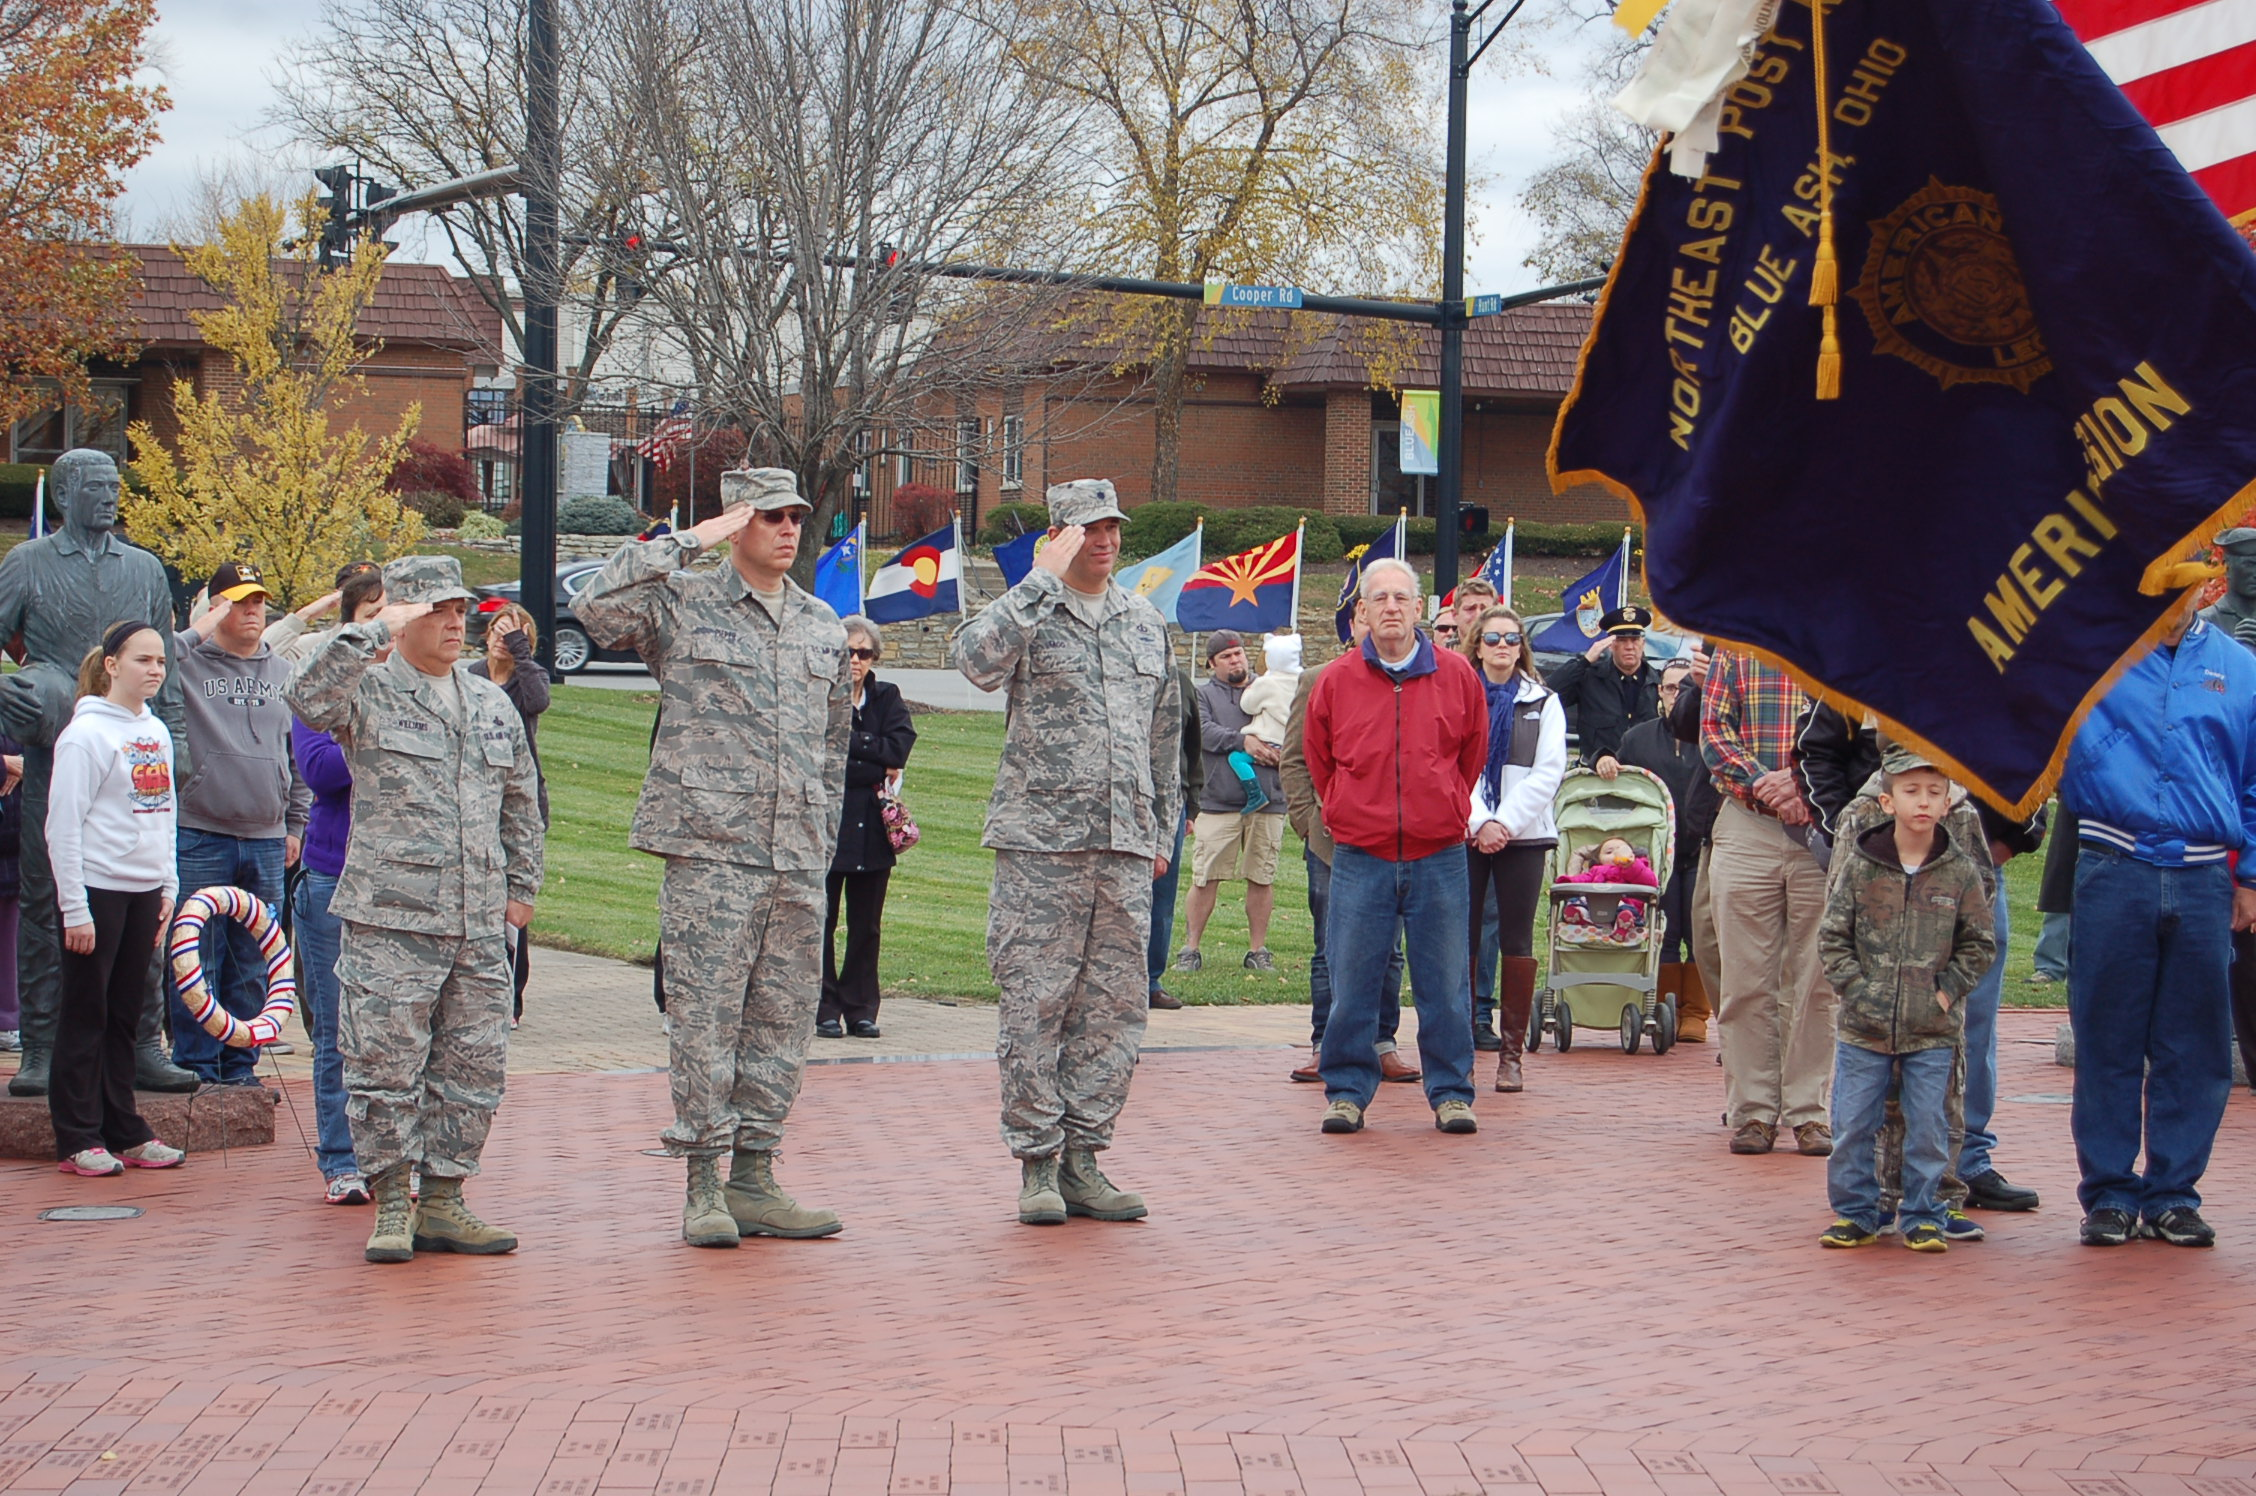 Soldiers saluting at Veterans Memorial